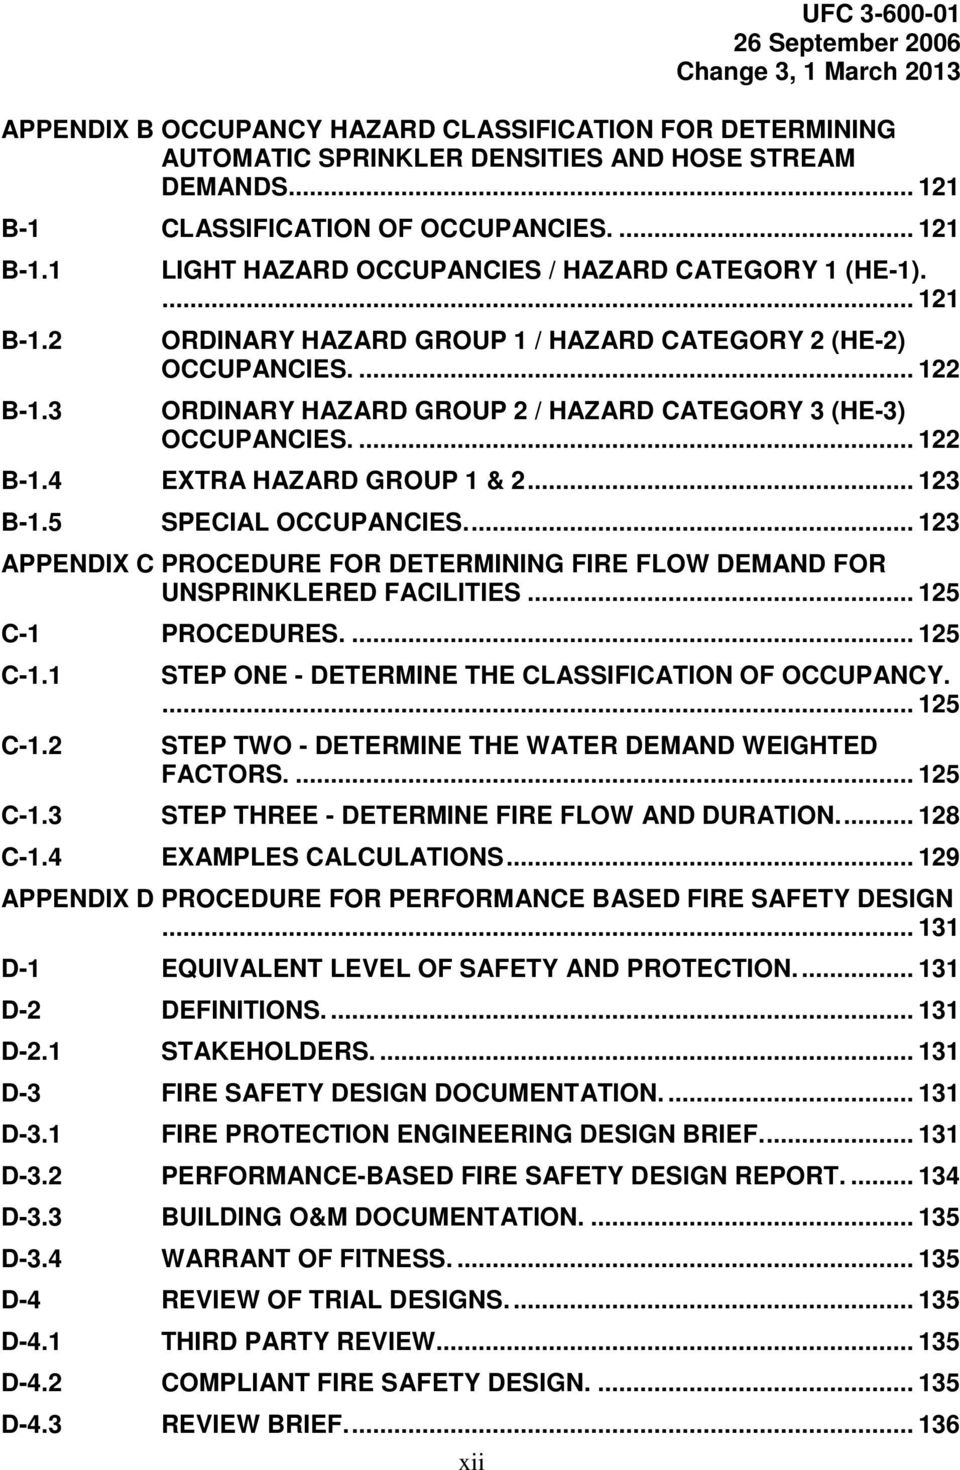 ... 122 B-1.4 EXTRA HAZARD GROUP 1 & 2... 123 B-1.5 SPECIAL OCCUPANCIES.... 123 APPENDIX C PROCEDURE FOR DETERMINING FIRE FLOW DEMAND FOR UNSPRINKLERED FACILITIES... 125 C-1 PROCEDURES.... 125 C-1.1 C-1.